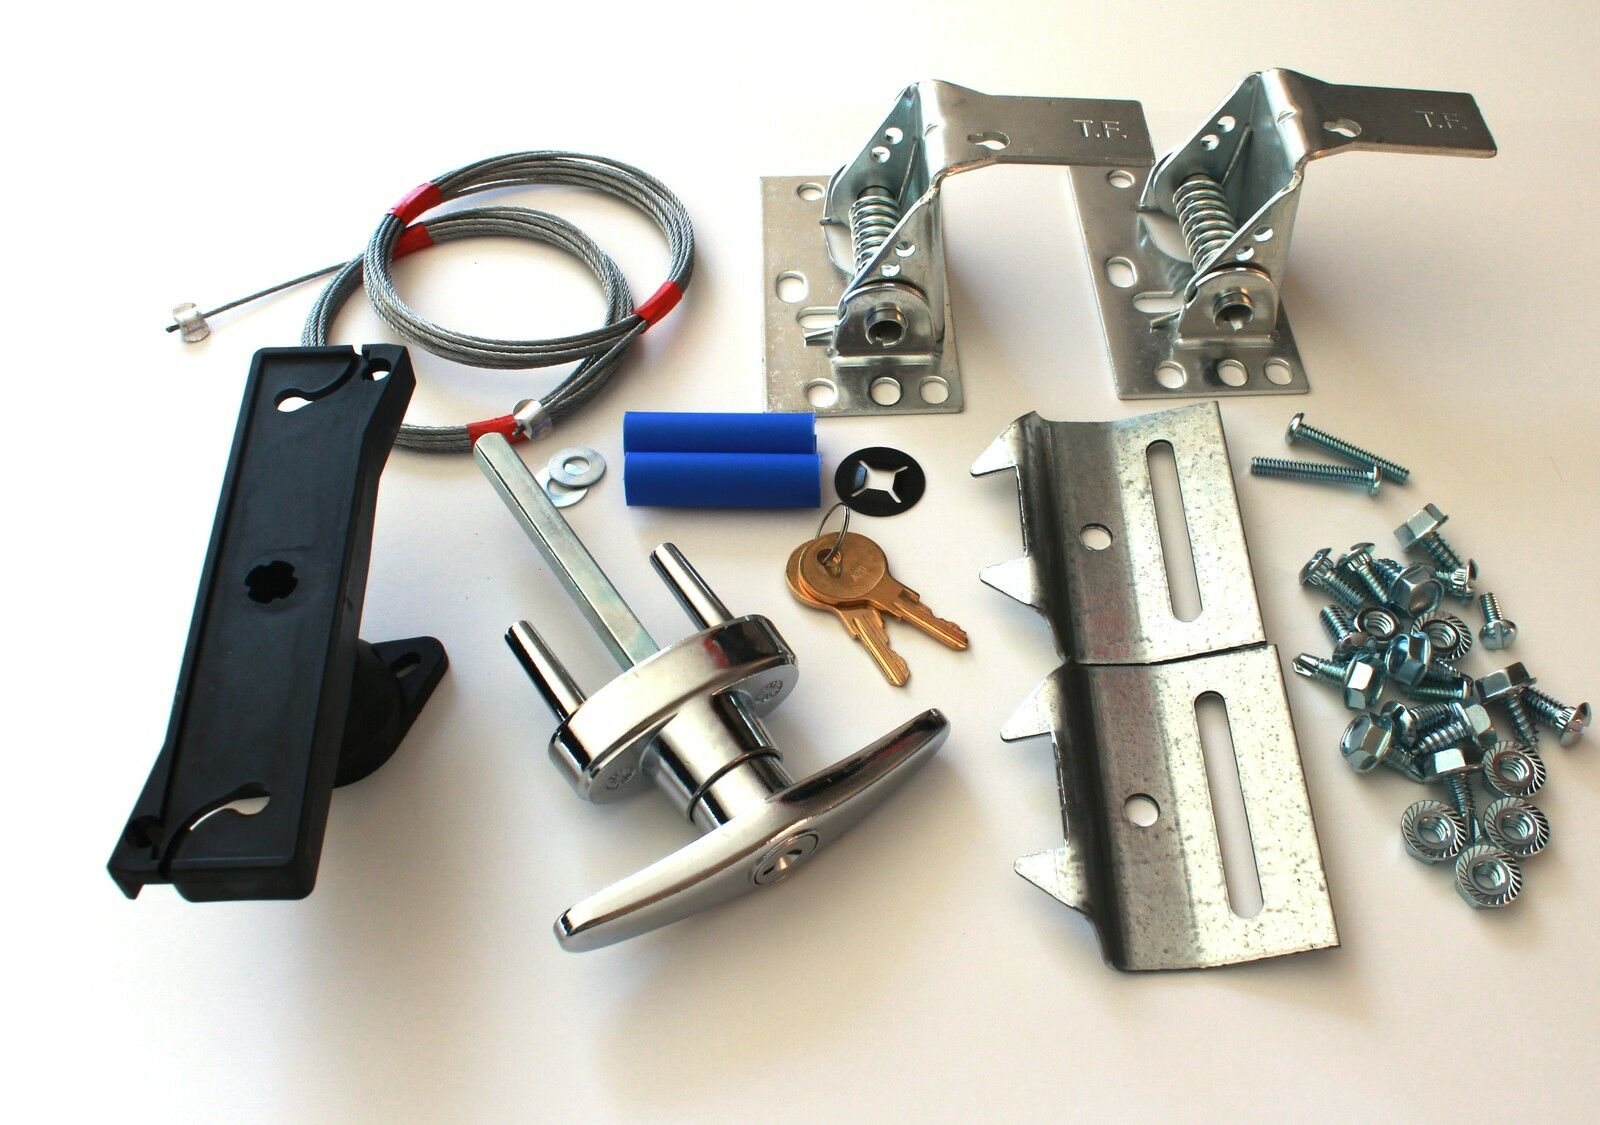 Deluxe Garage Door Lock Kit W/2 Keys, Universal